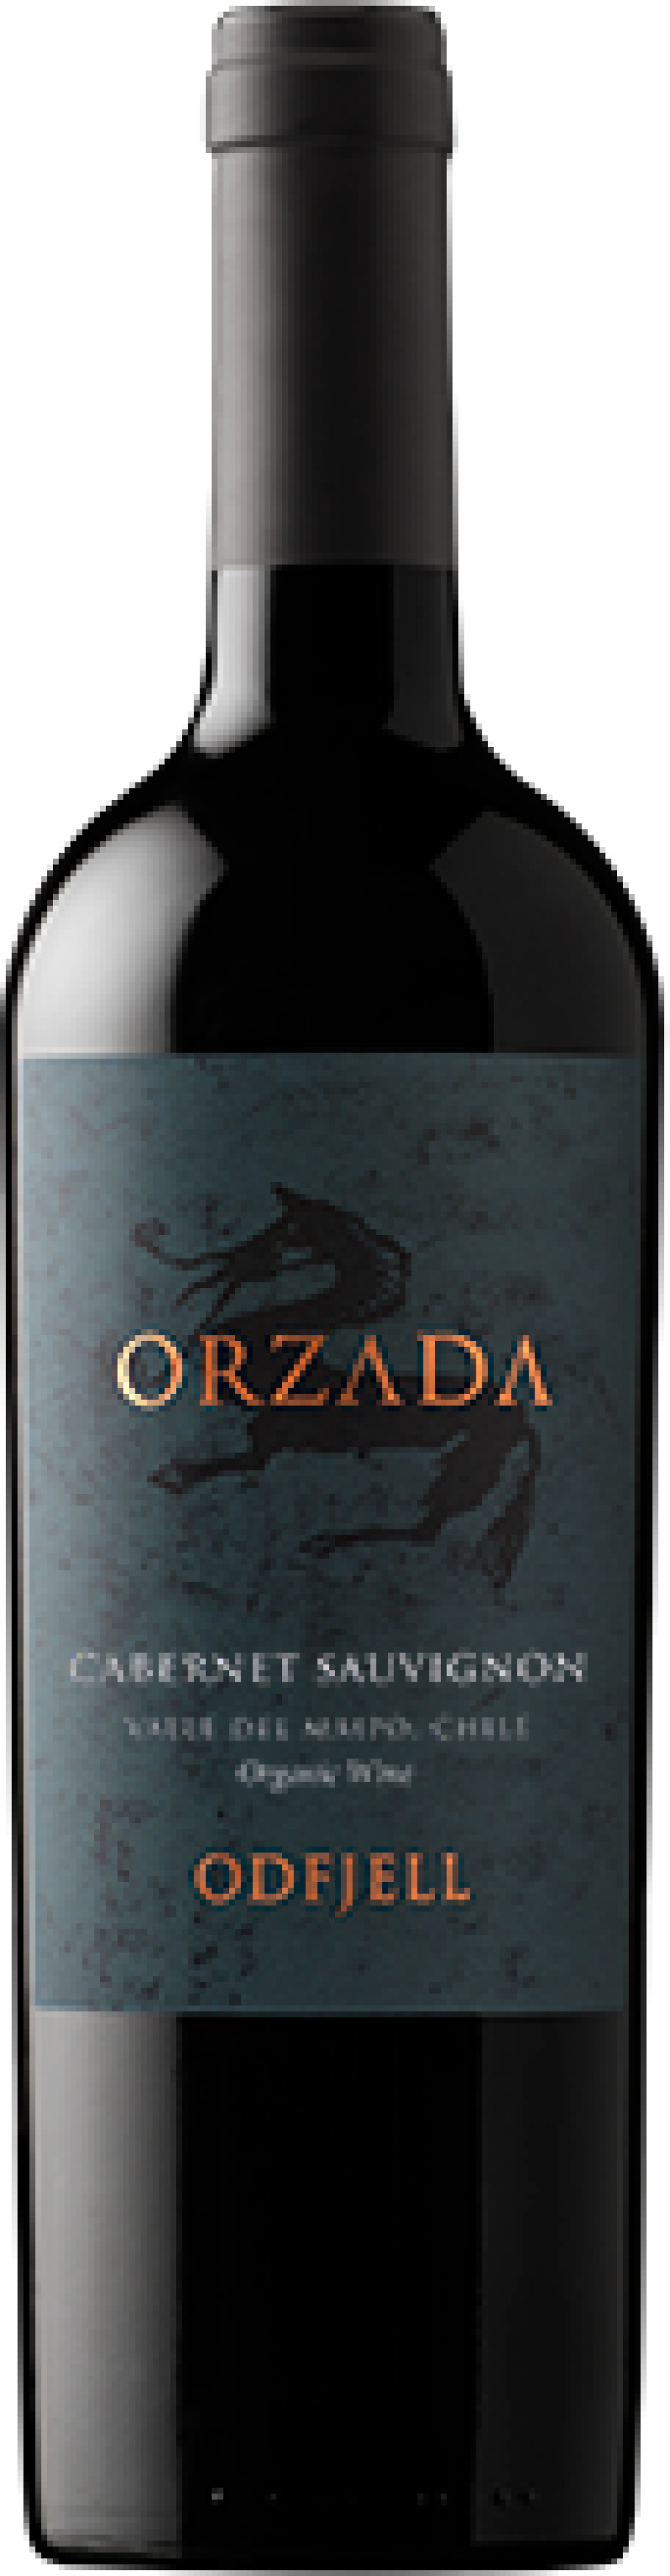 files/images/wines/Chile/odfjell-vineyards/2013 cabernet sauvignon orzada.png